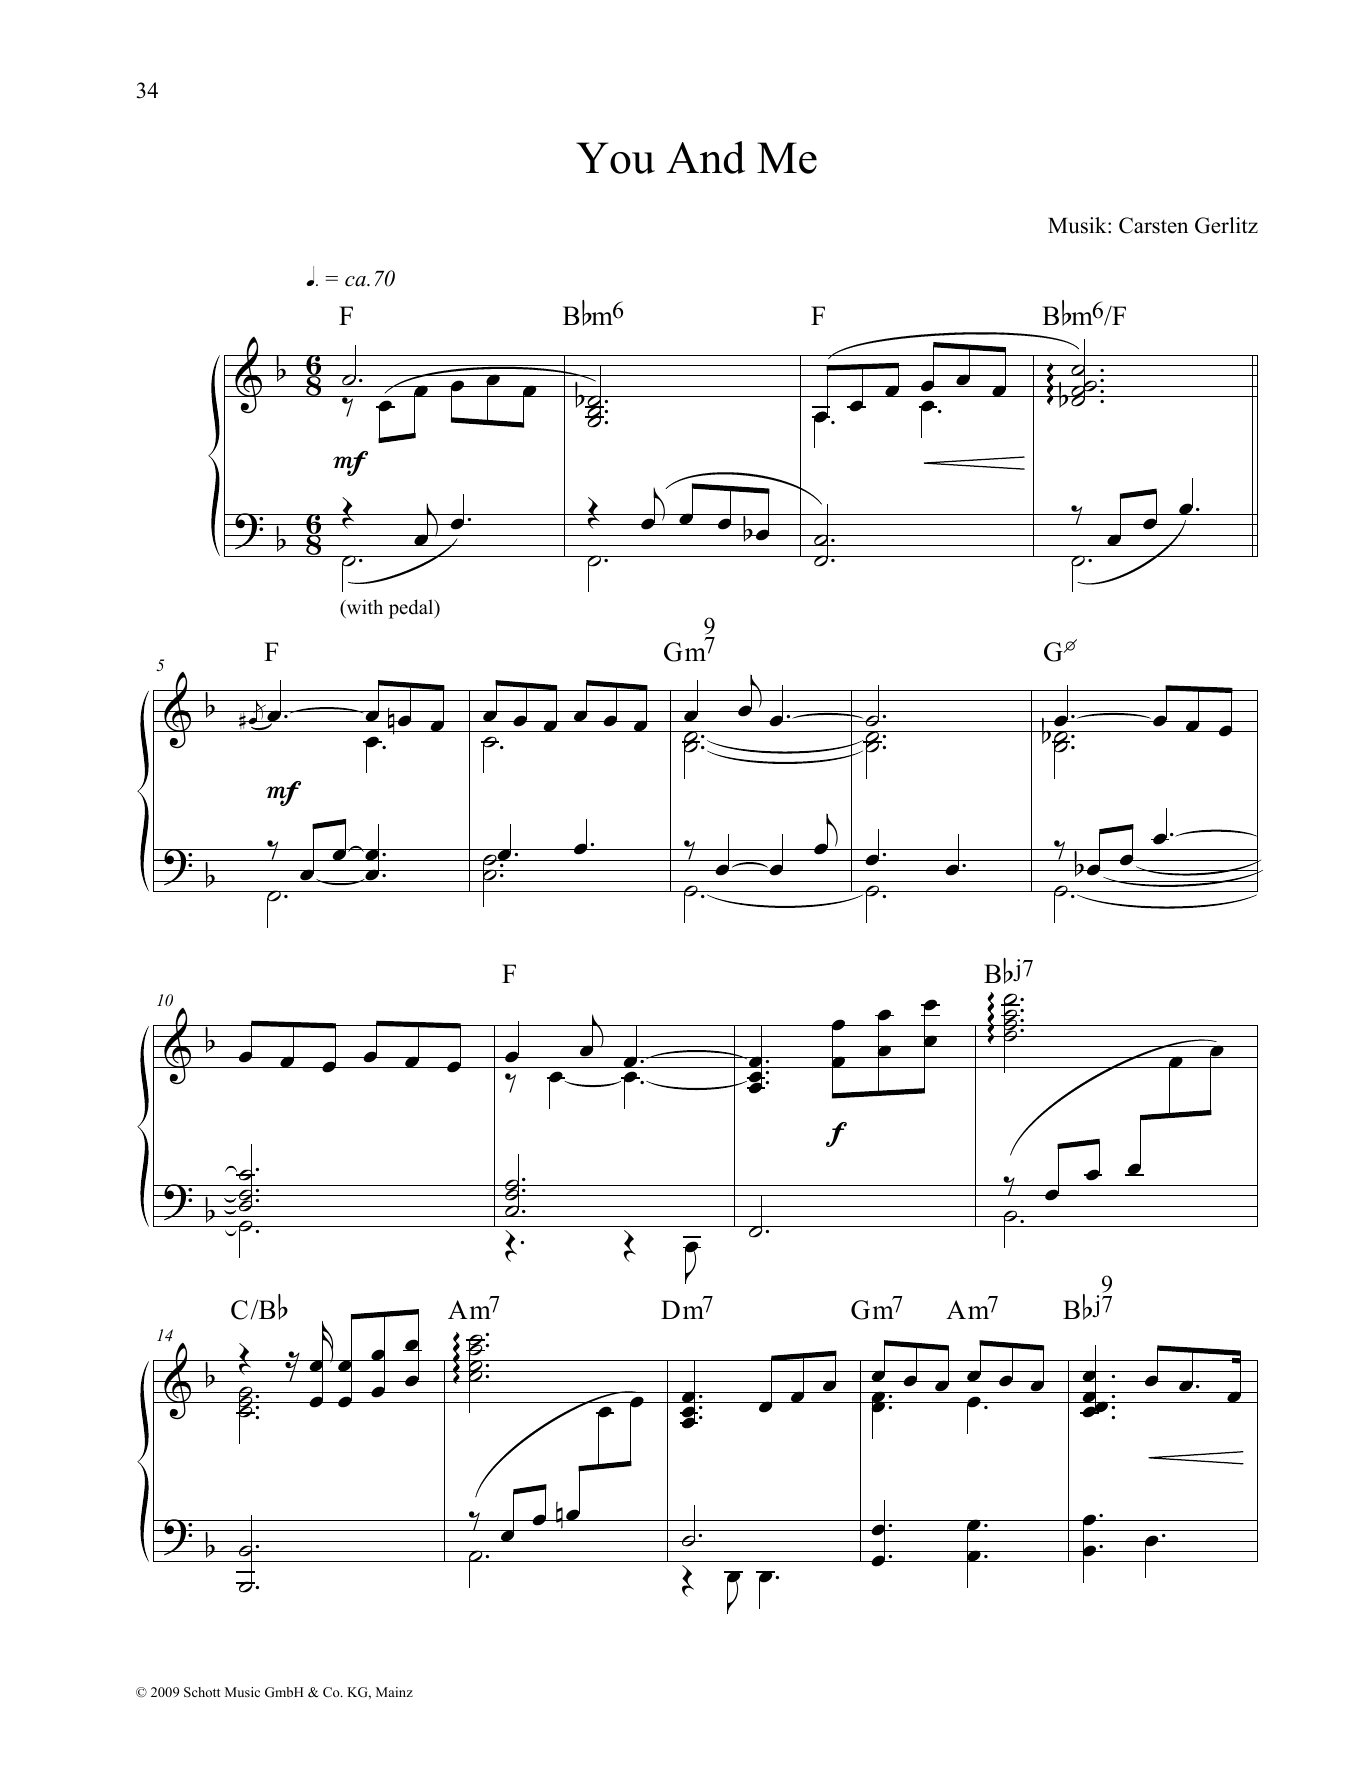 You and Me Sheet Music